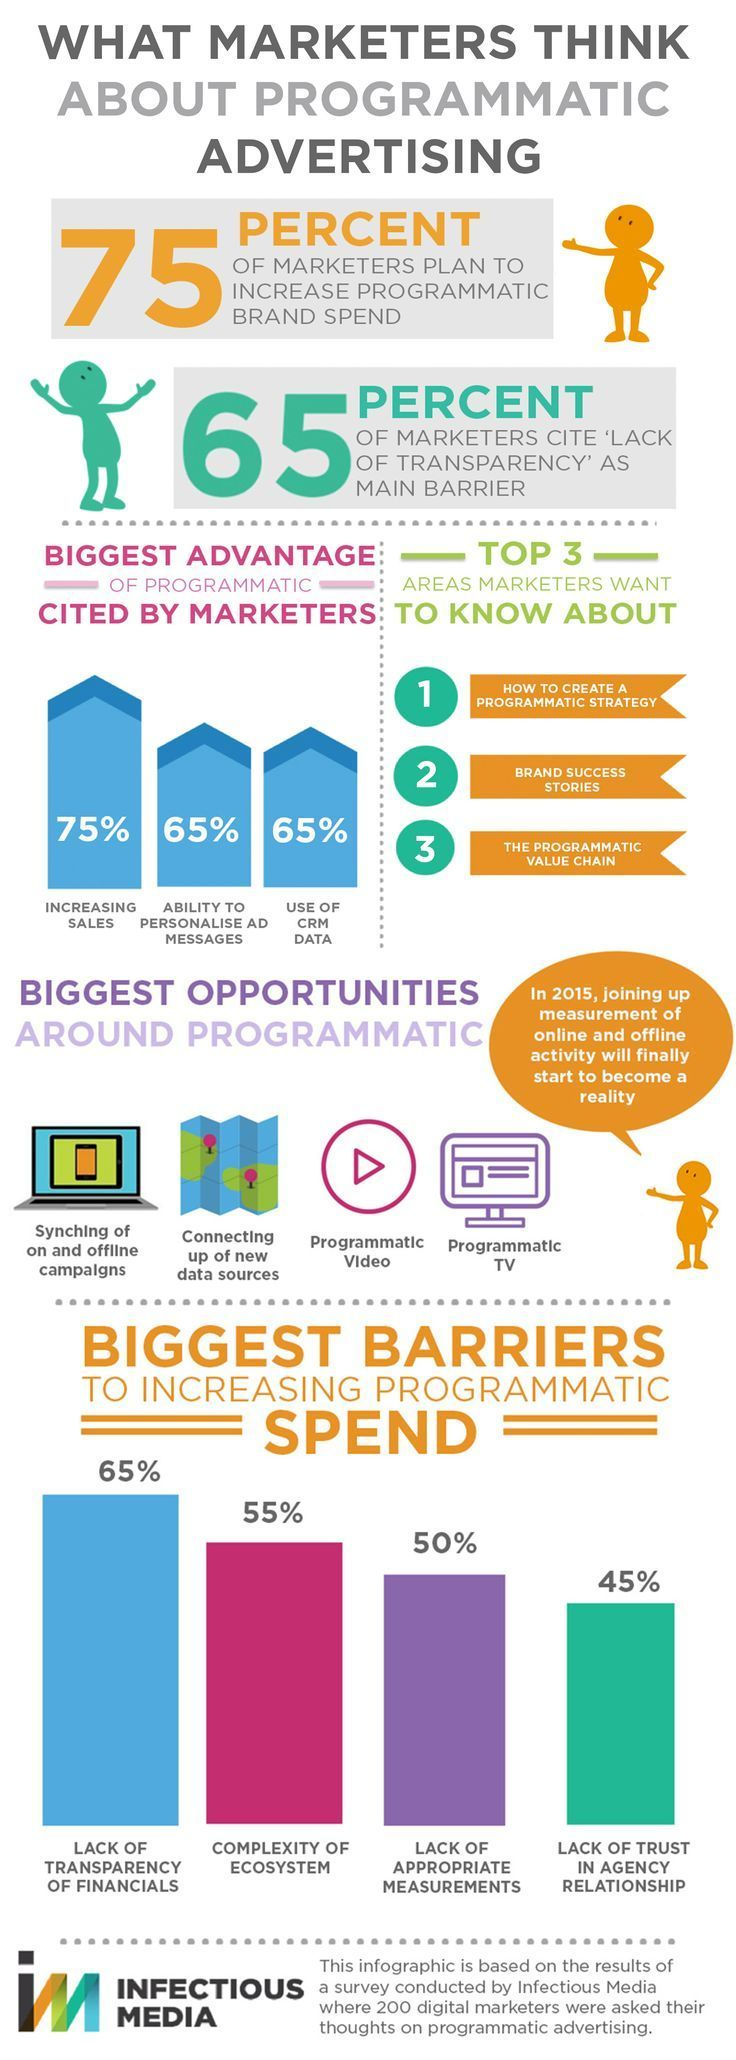 Advertising-Infographics-What-Marketers-Really-Think-About-Programmatic-Advertising Advertising Infographics : What Marketers Really Think About Programmatic Advertising Infographic